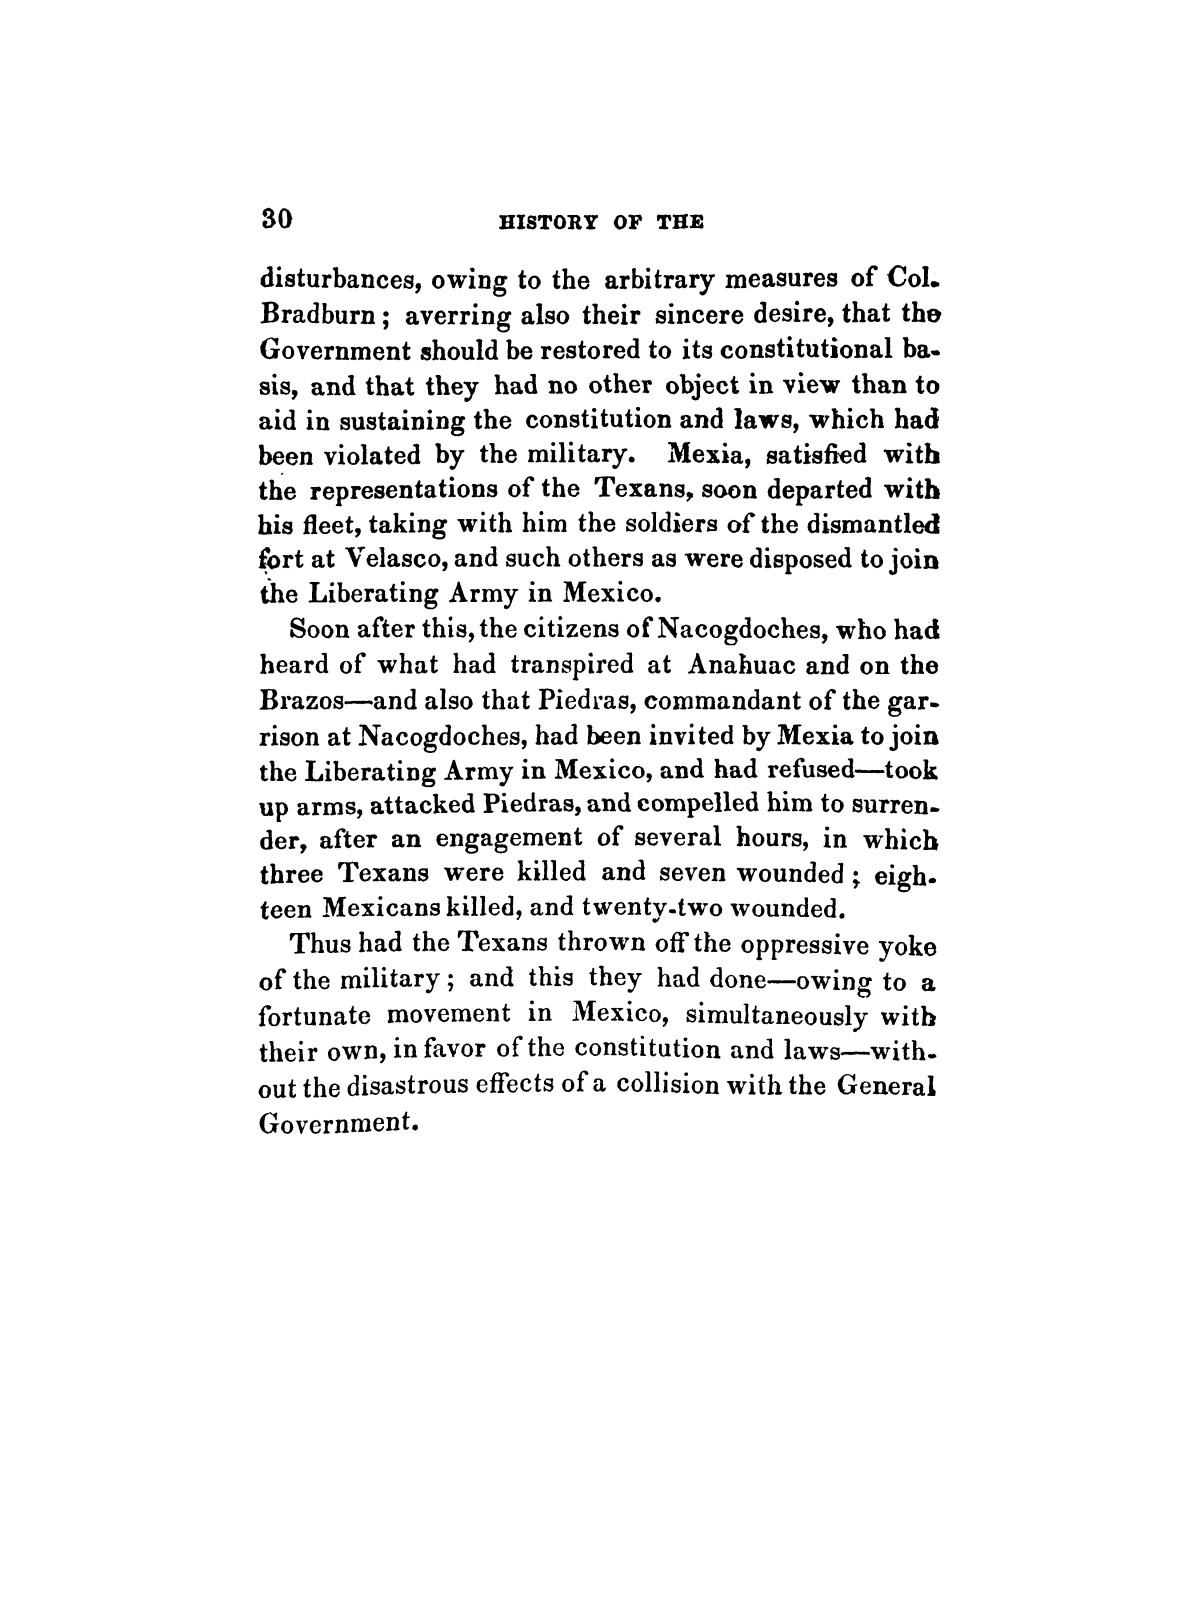 History of the revolution in Texas, particularly of the war of 1835 & '36; together with the latest geographical, topographical, and statistical accounts of the country, from the most authentic sources. Also, an appendix. By the Rev. C. Newell.                                                                                                      [Sequence #]: 42 of 227